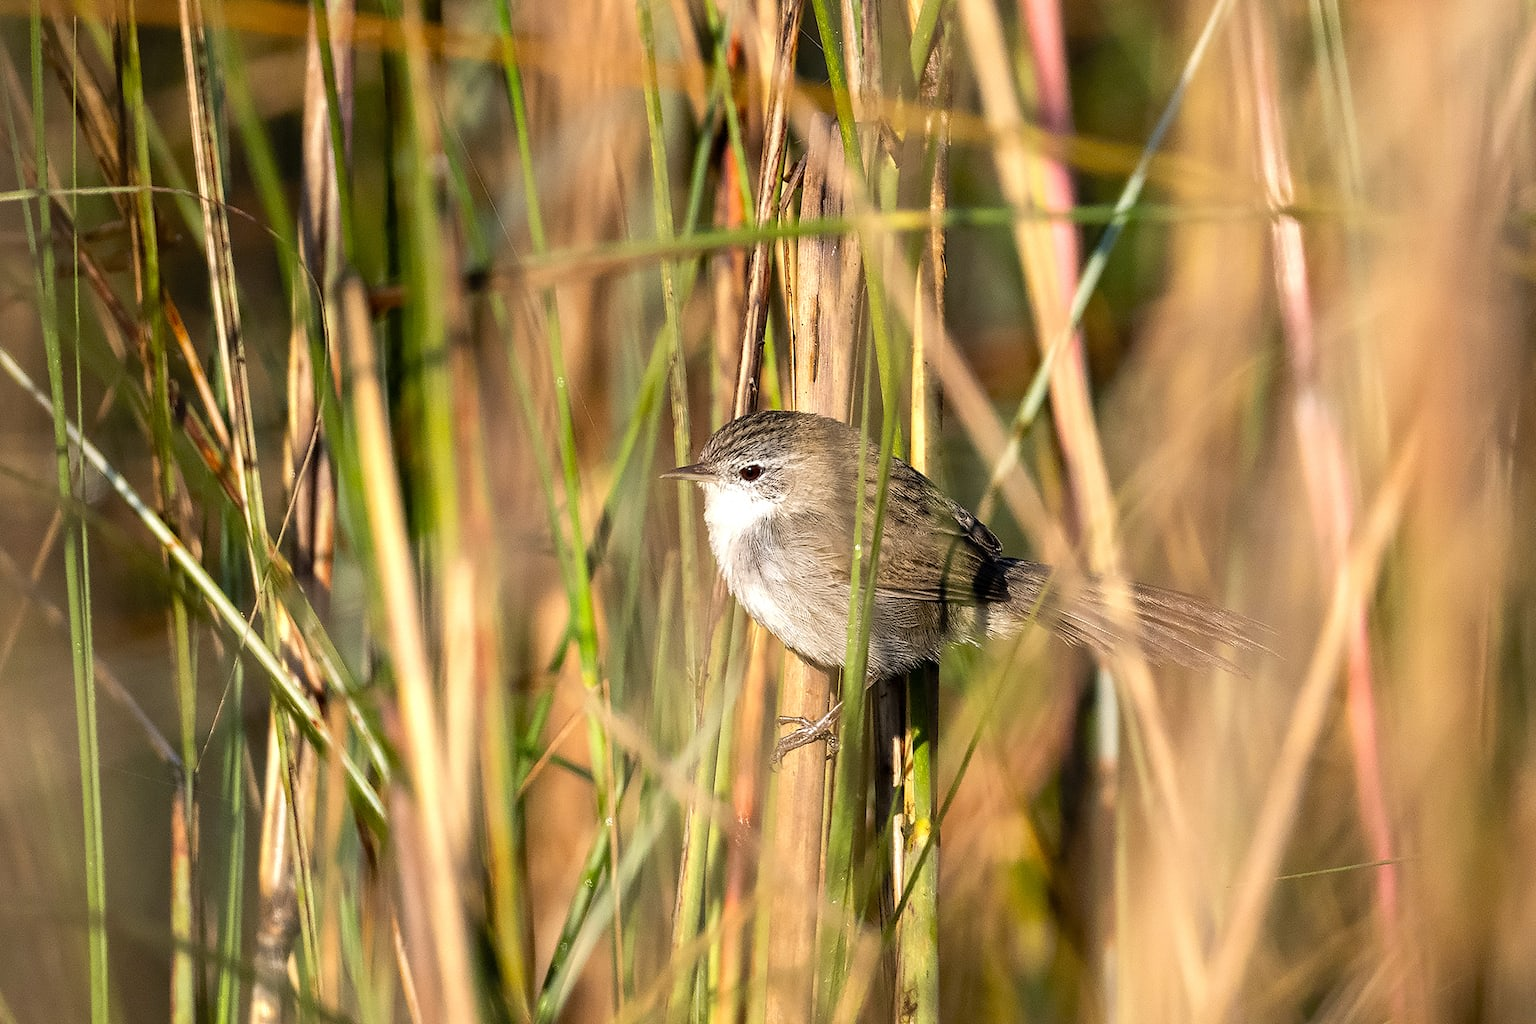 Previously identified as swamp prinia, the swamp grass babbler (Laticilla cinerascens) is one of the most threatened birds of the landscape. It is shy and hides in deep beds of tall grasses, especially elephant grasses. Often the only way to notice its presence is by its chirpy, melodious song. Photo: Rofikul Islam